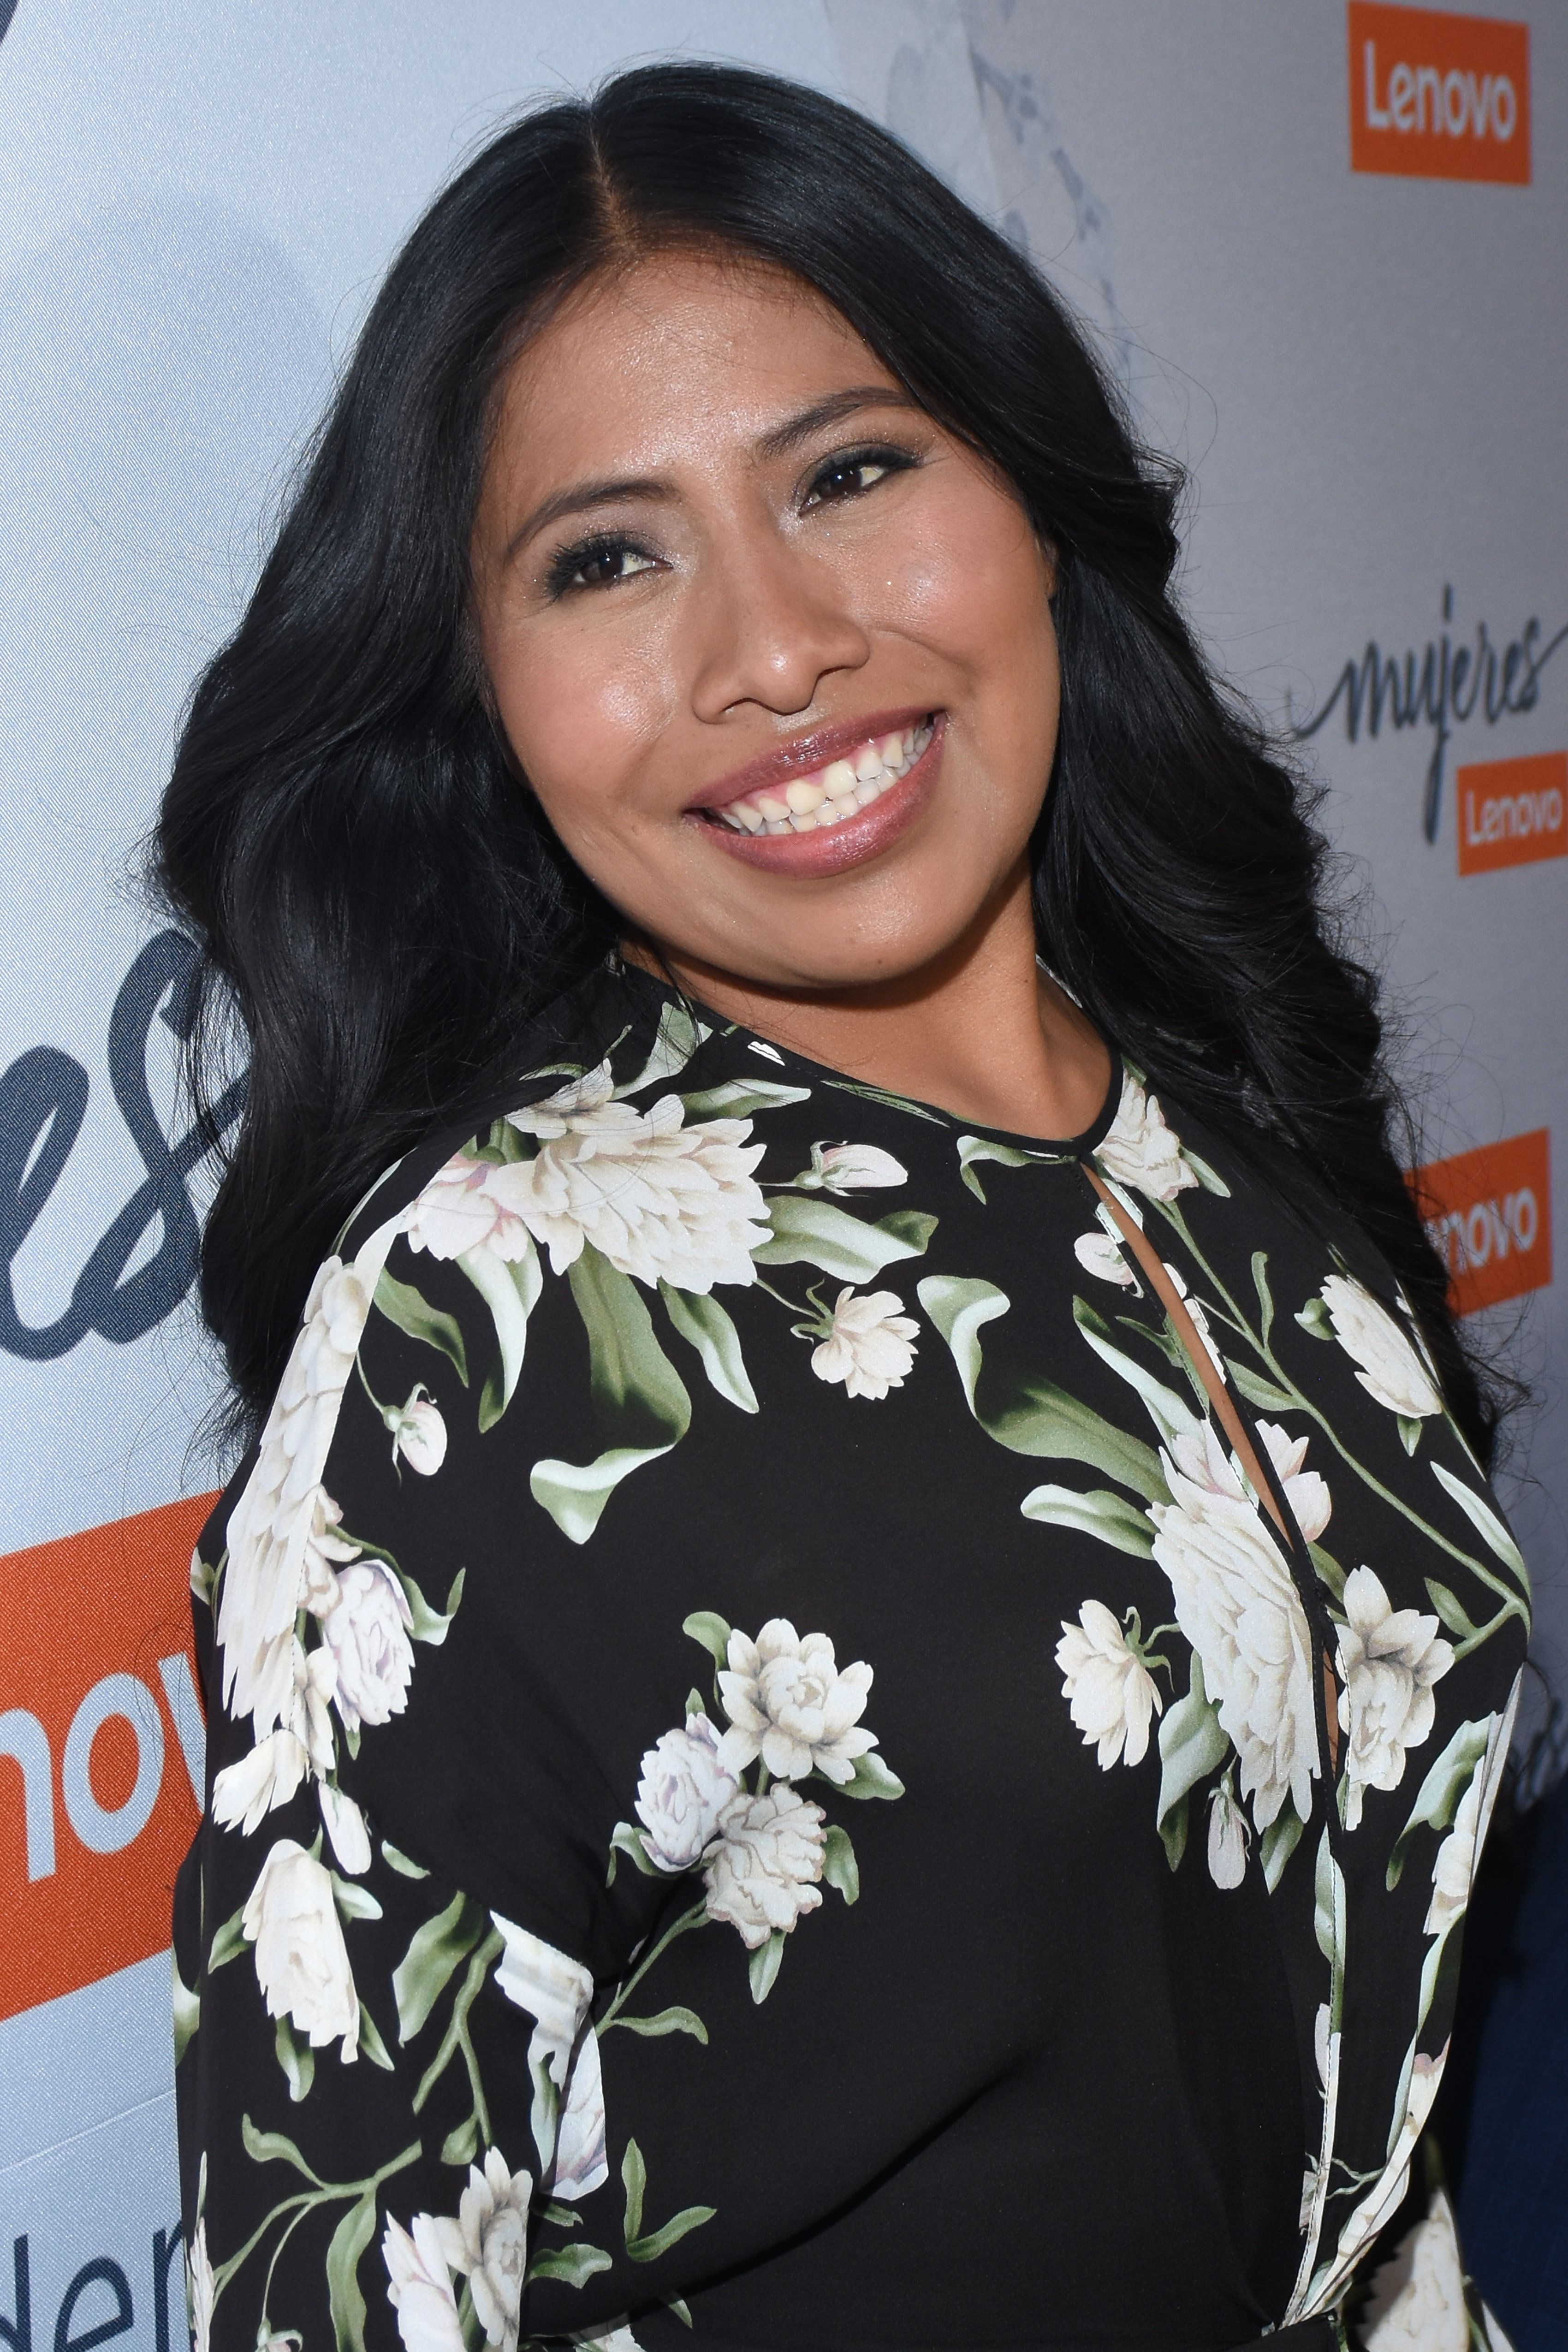 Mexico Has Fallen In Love With The Indigenous Star Of 'Roma.' But What About The Other Yalitza